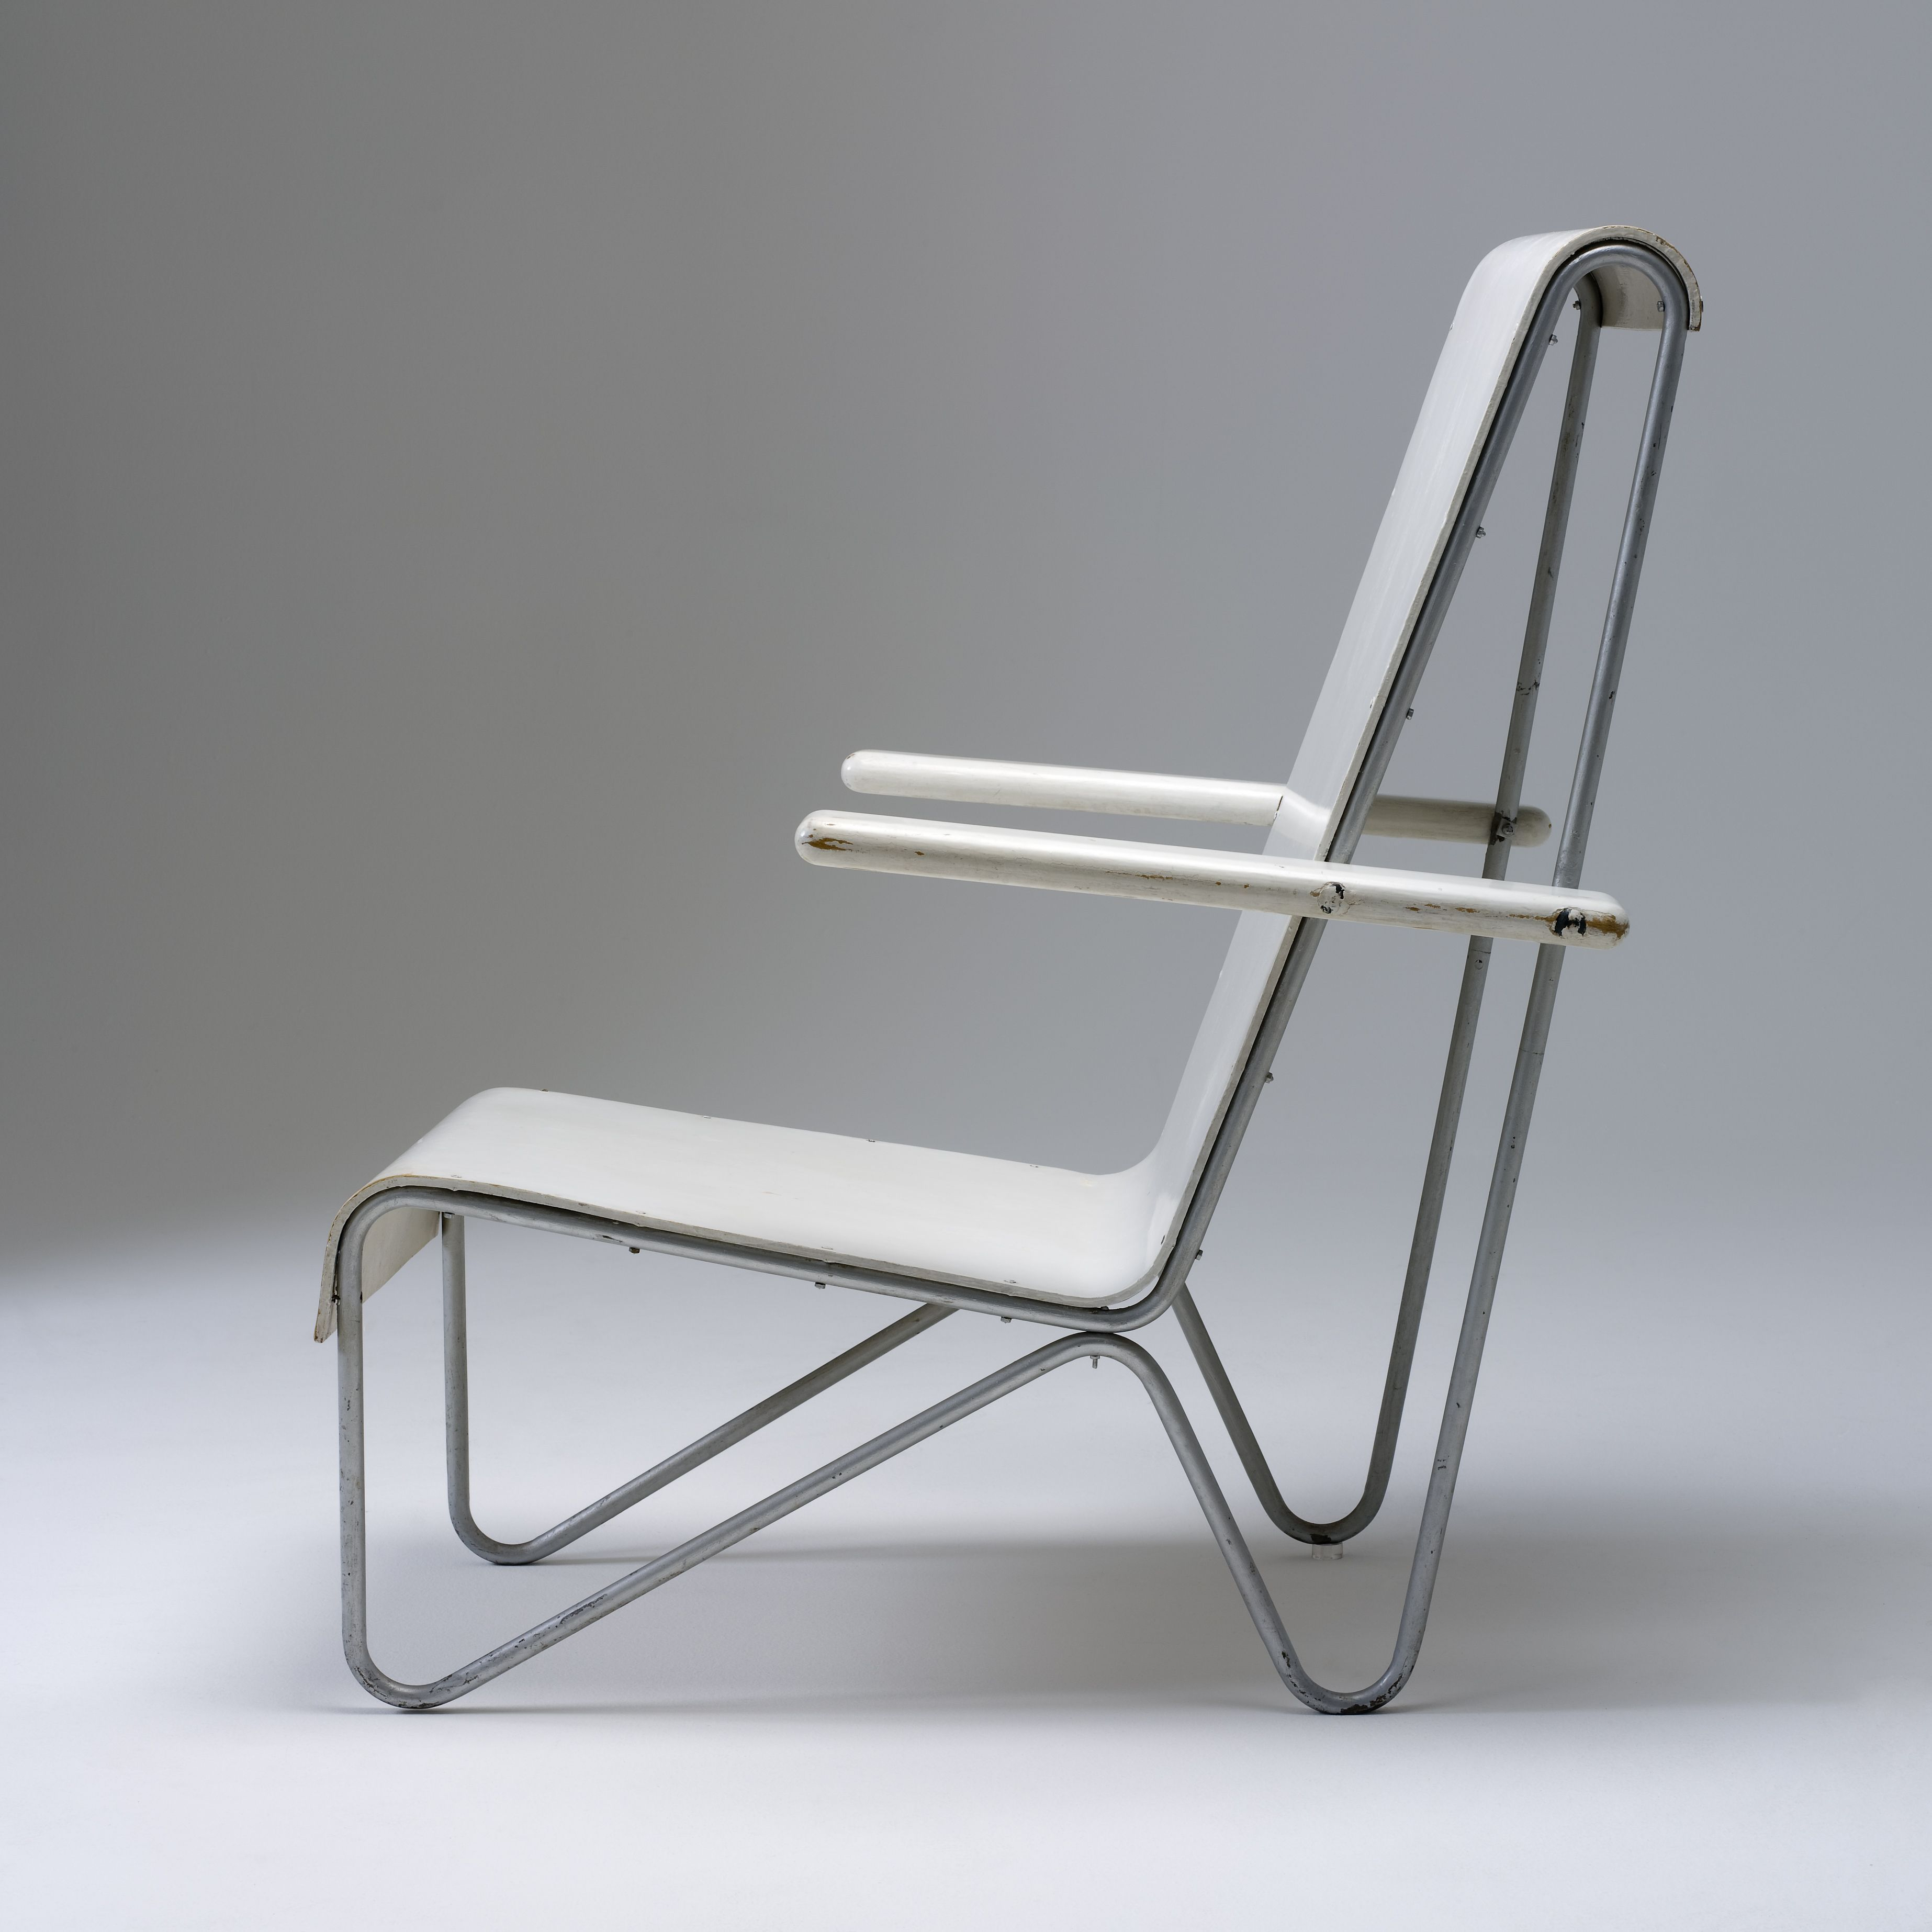 Armchair designed by Gerrit Rietveld and made in Amsterdam